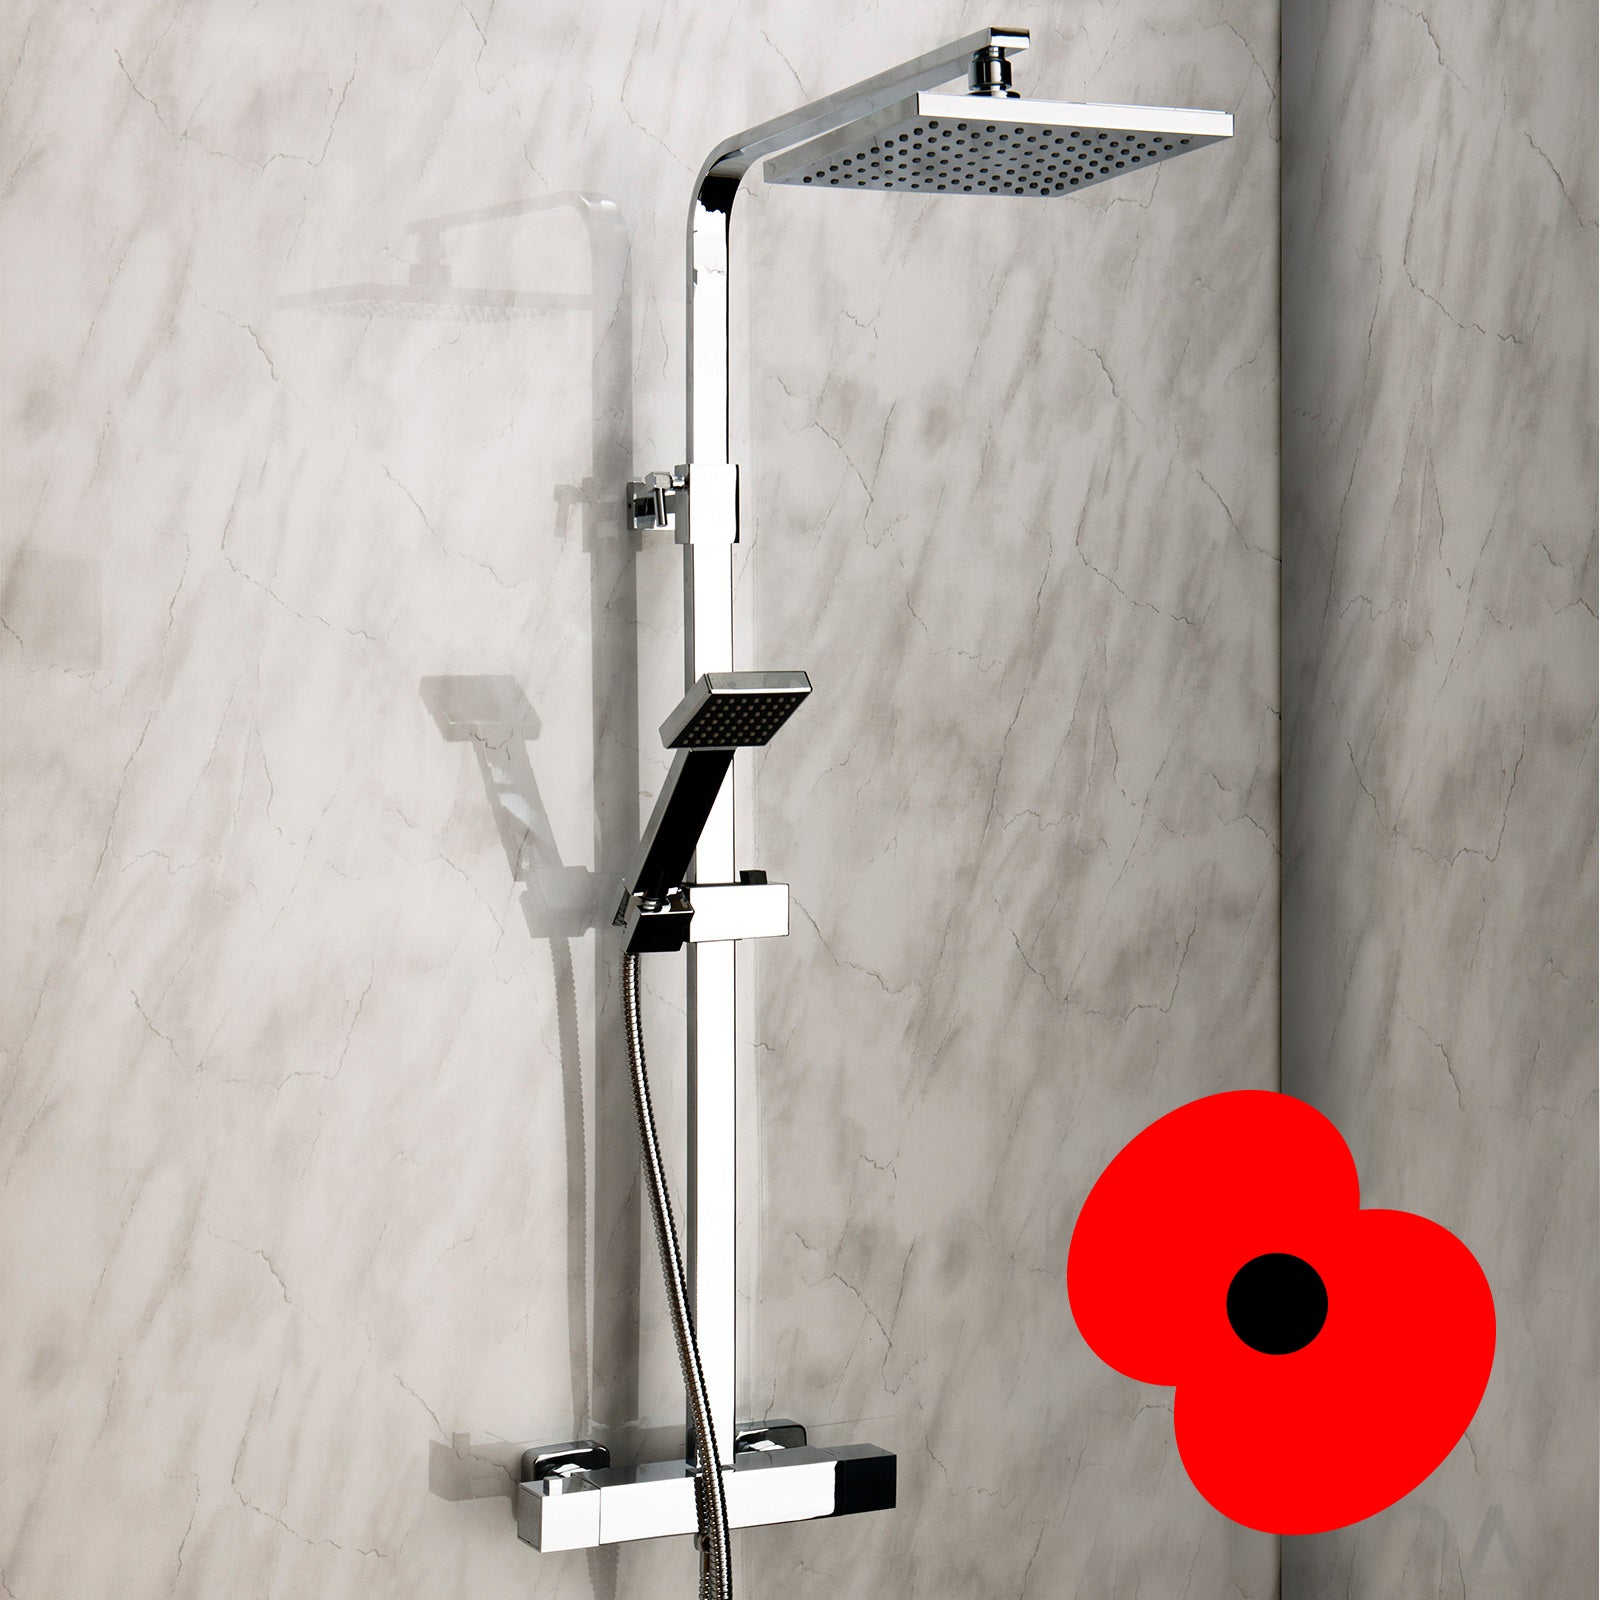 Shower in style with the Elite Square Head Shower!